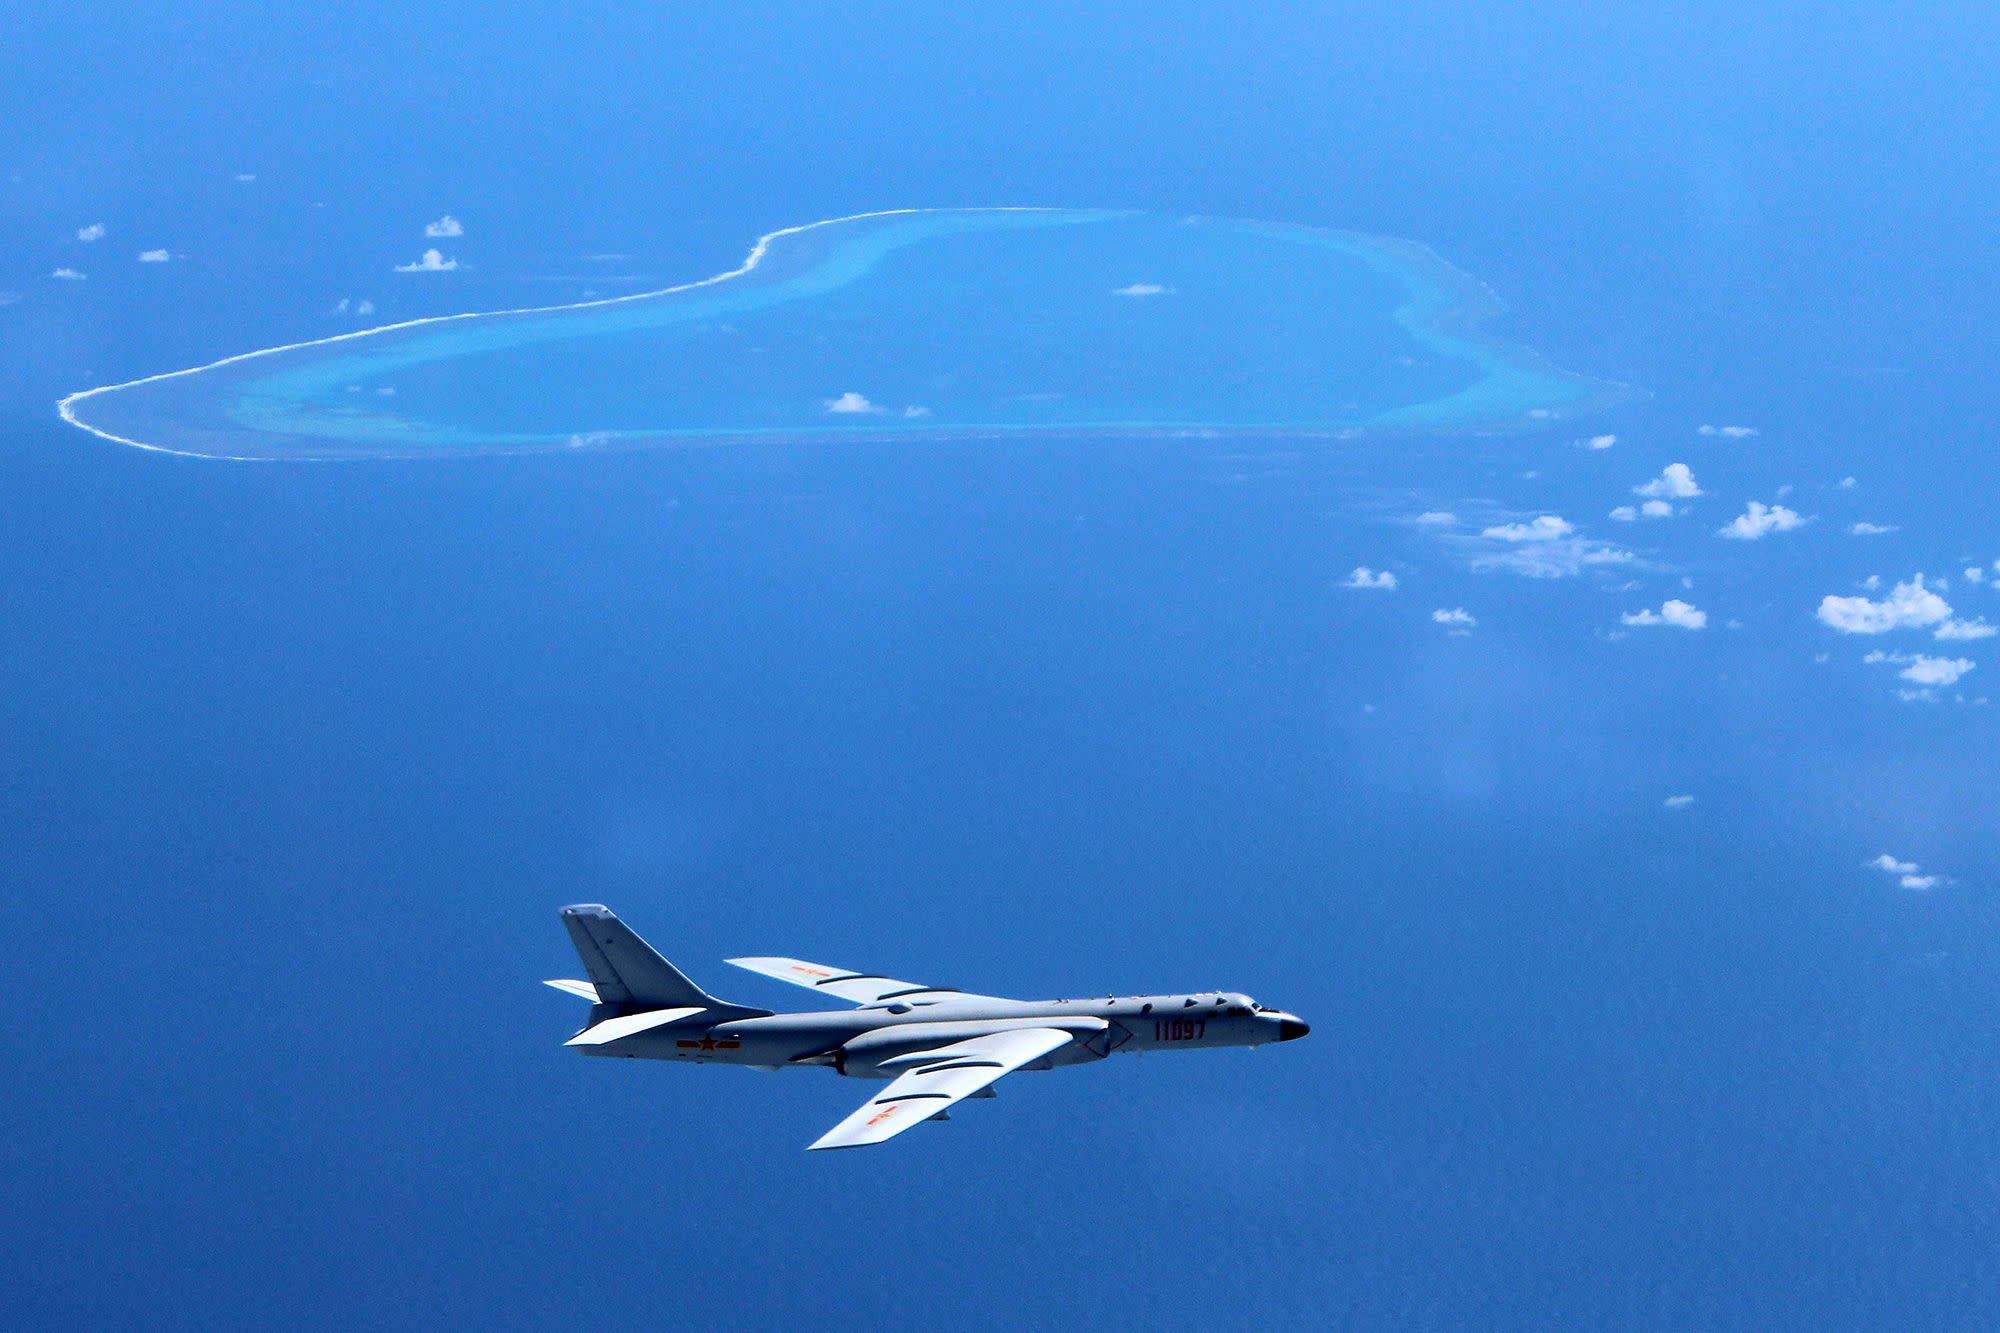 U.S. destroying peace, stability in South China Sea, says China